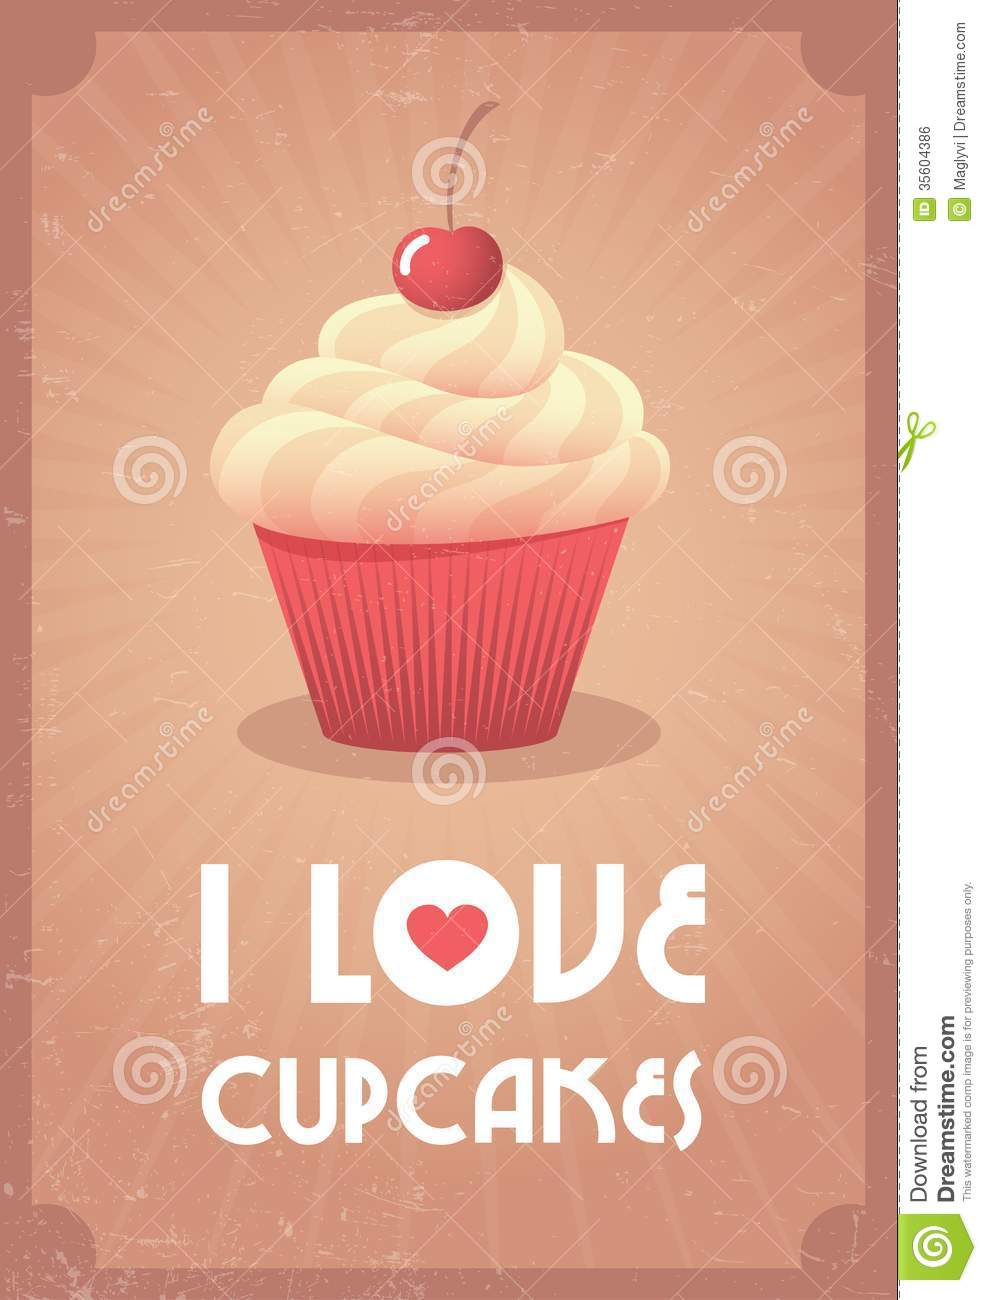 I Love Cupcakes Royalty Free Stock Image - Image: 35604386